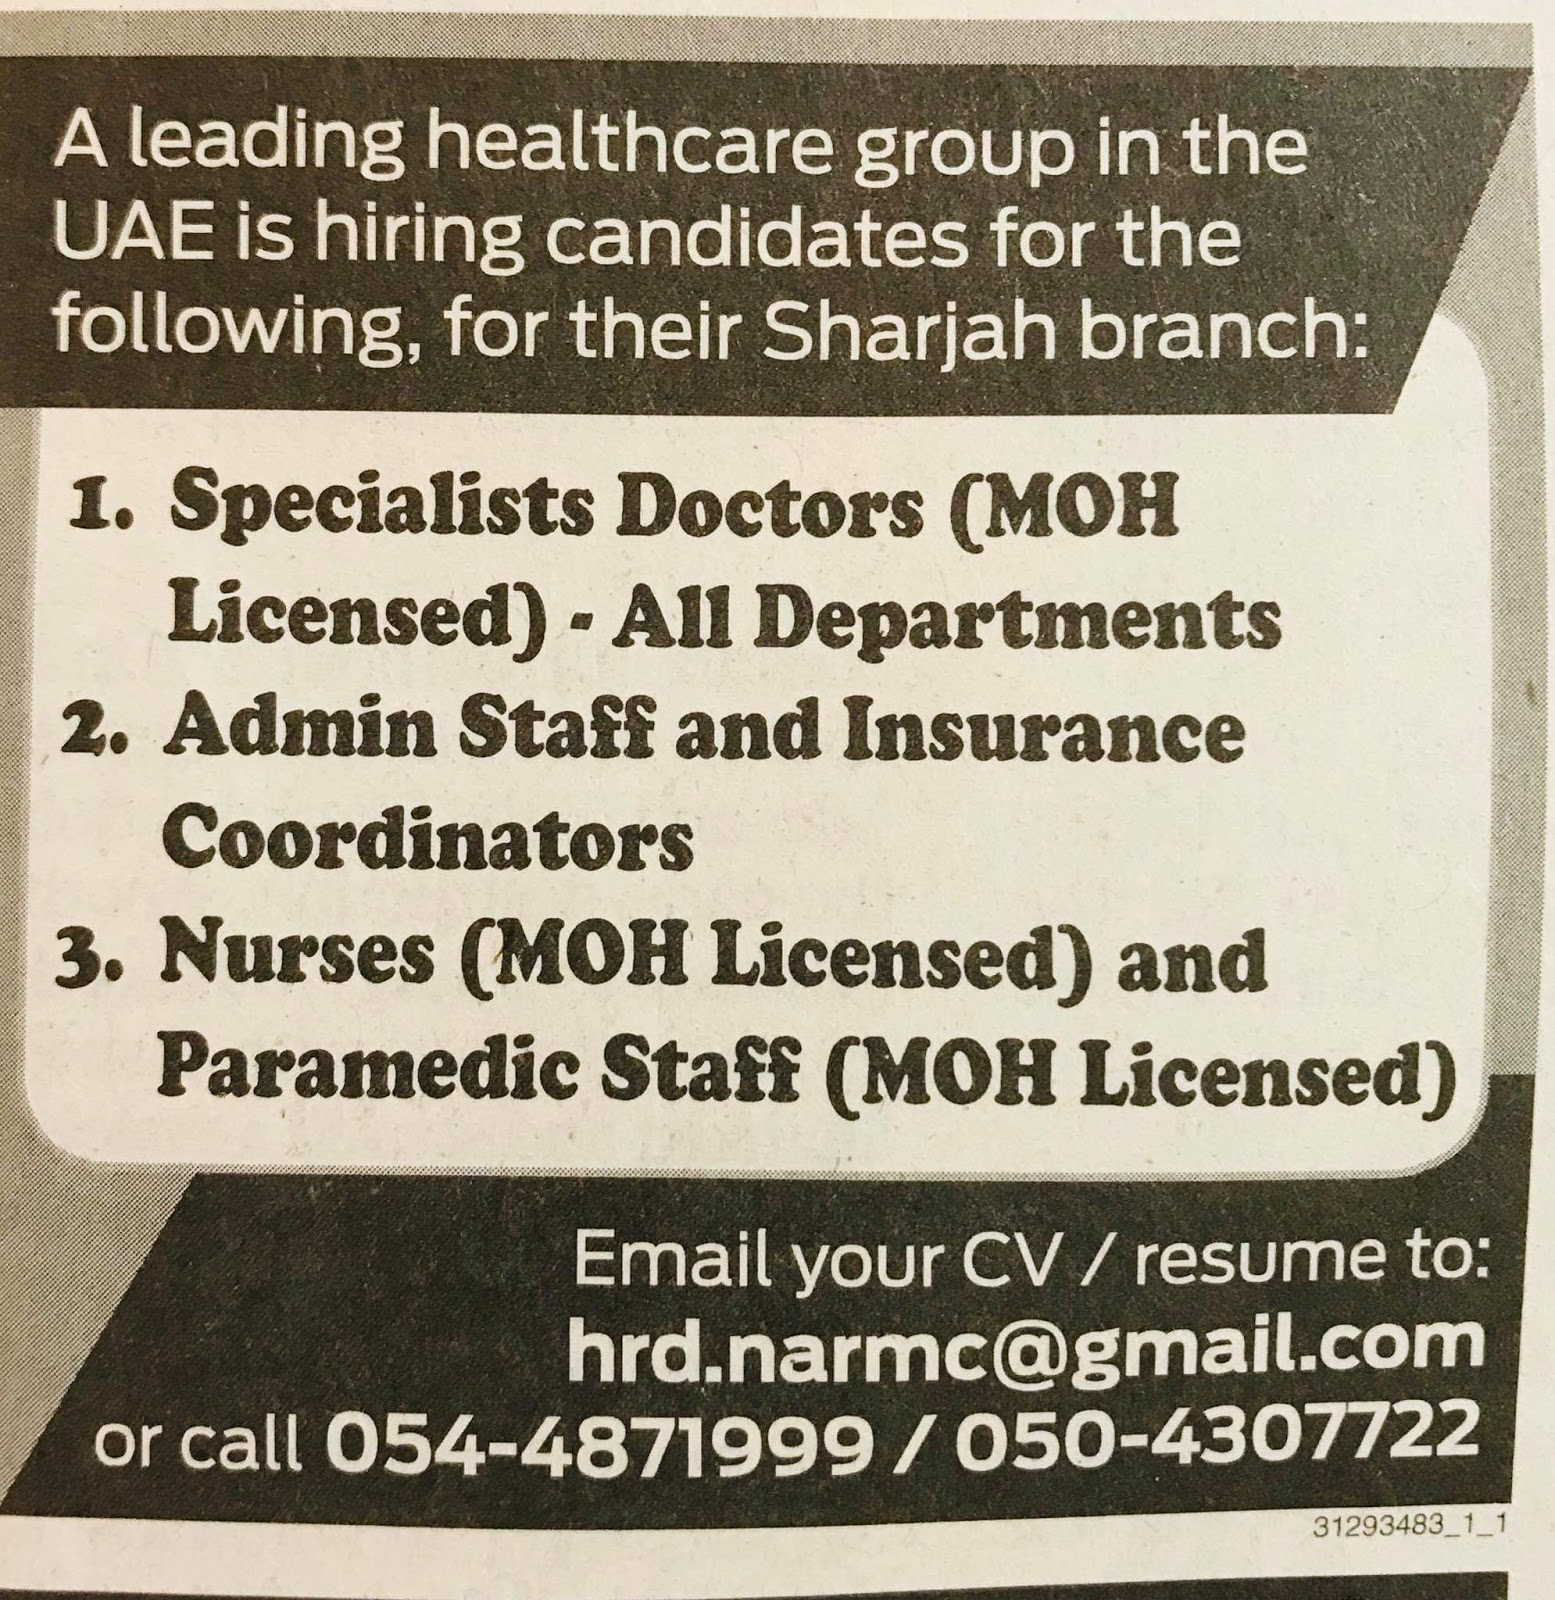 Hiring Candidates A Leading Healthcare group in the UAE Sharjah-UAE